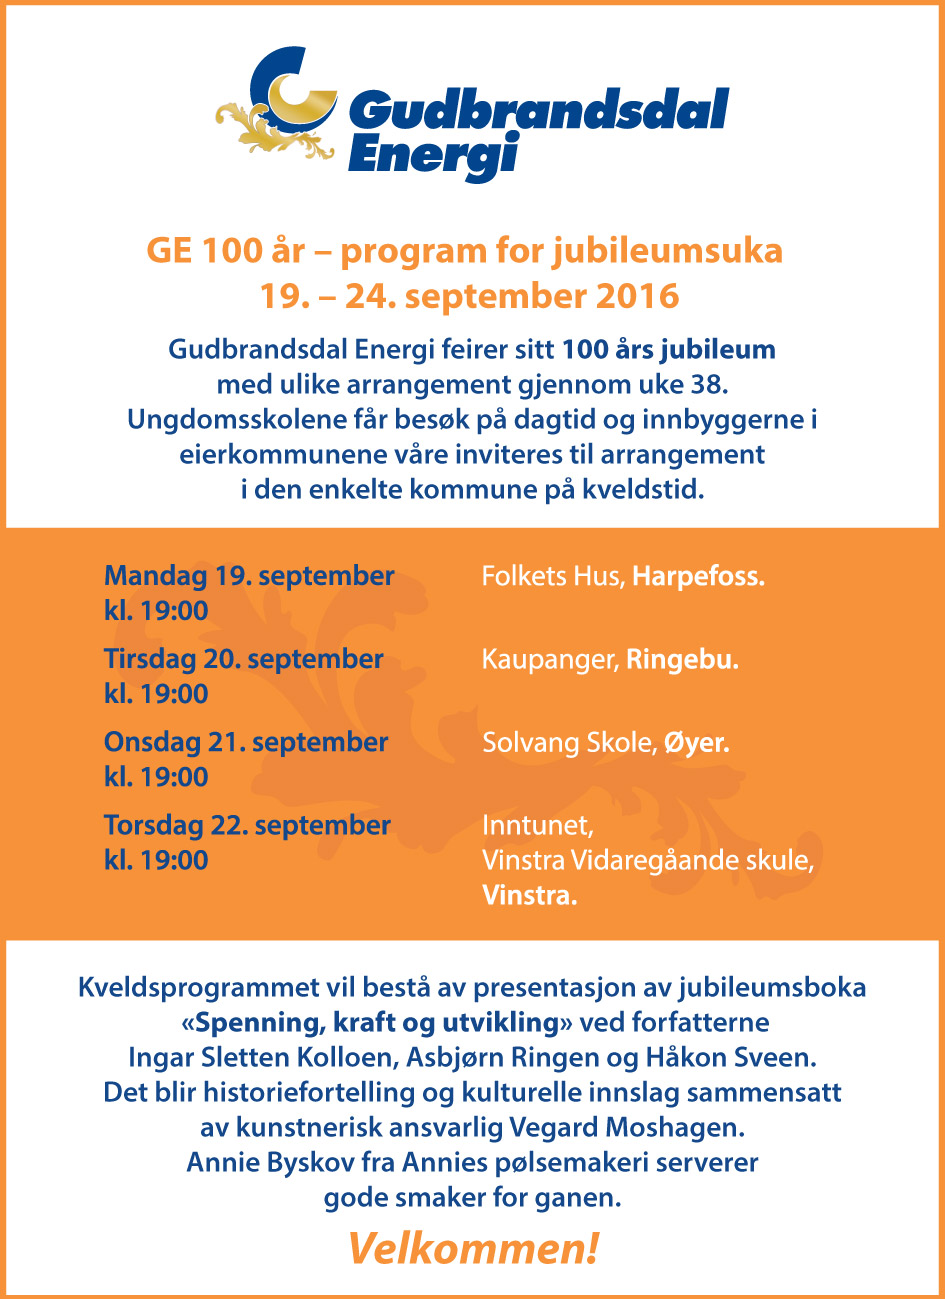 GE 100 år – program for jubileumsuka 19. – 24. september 2016